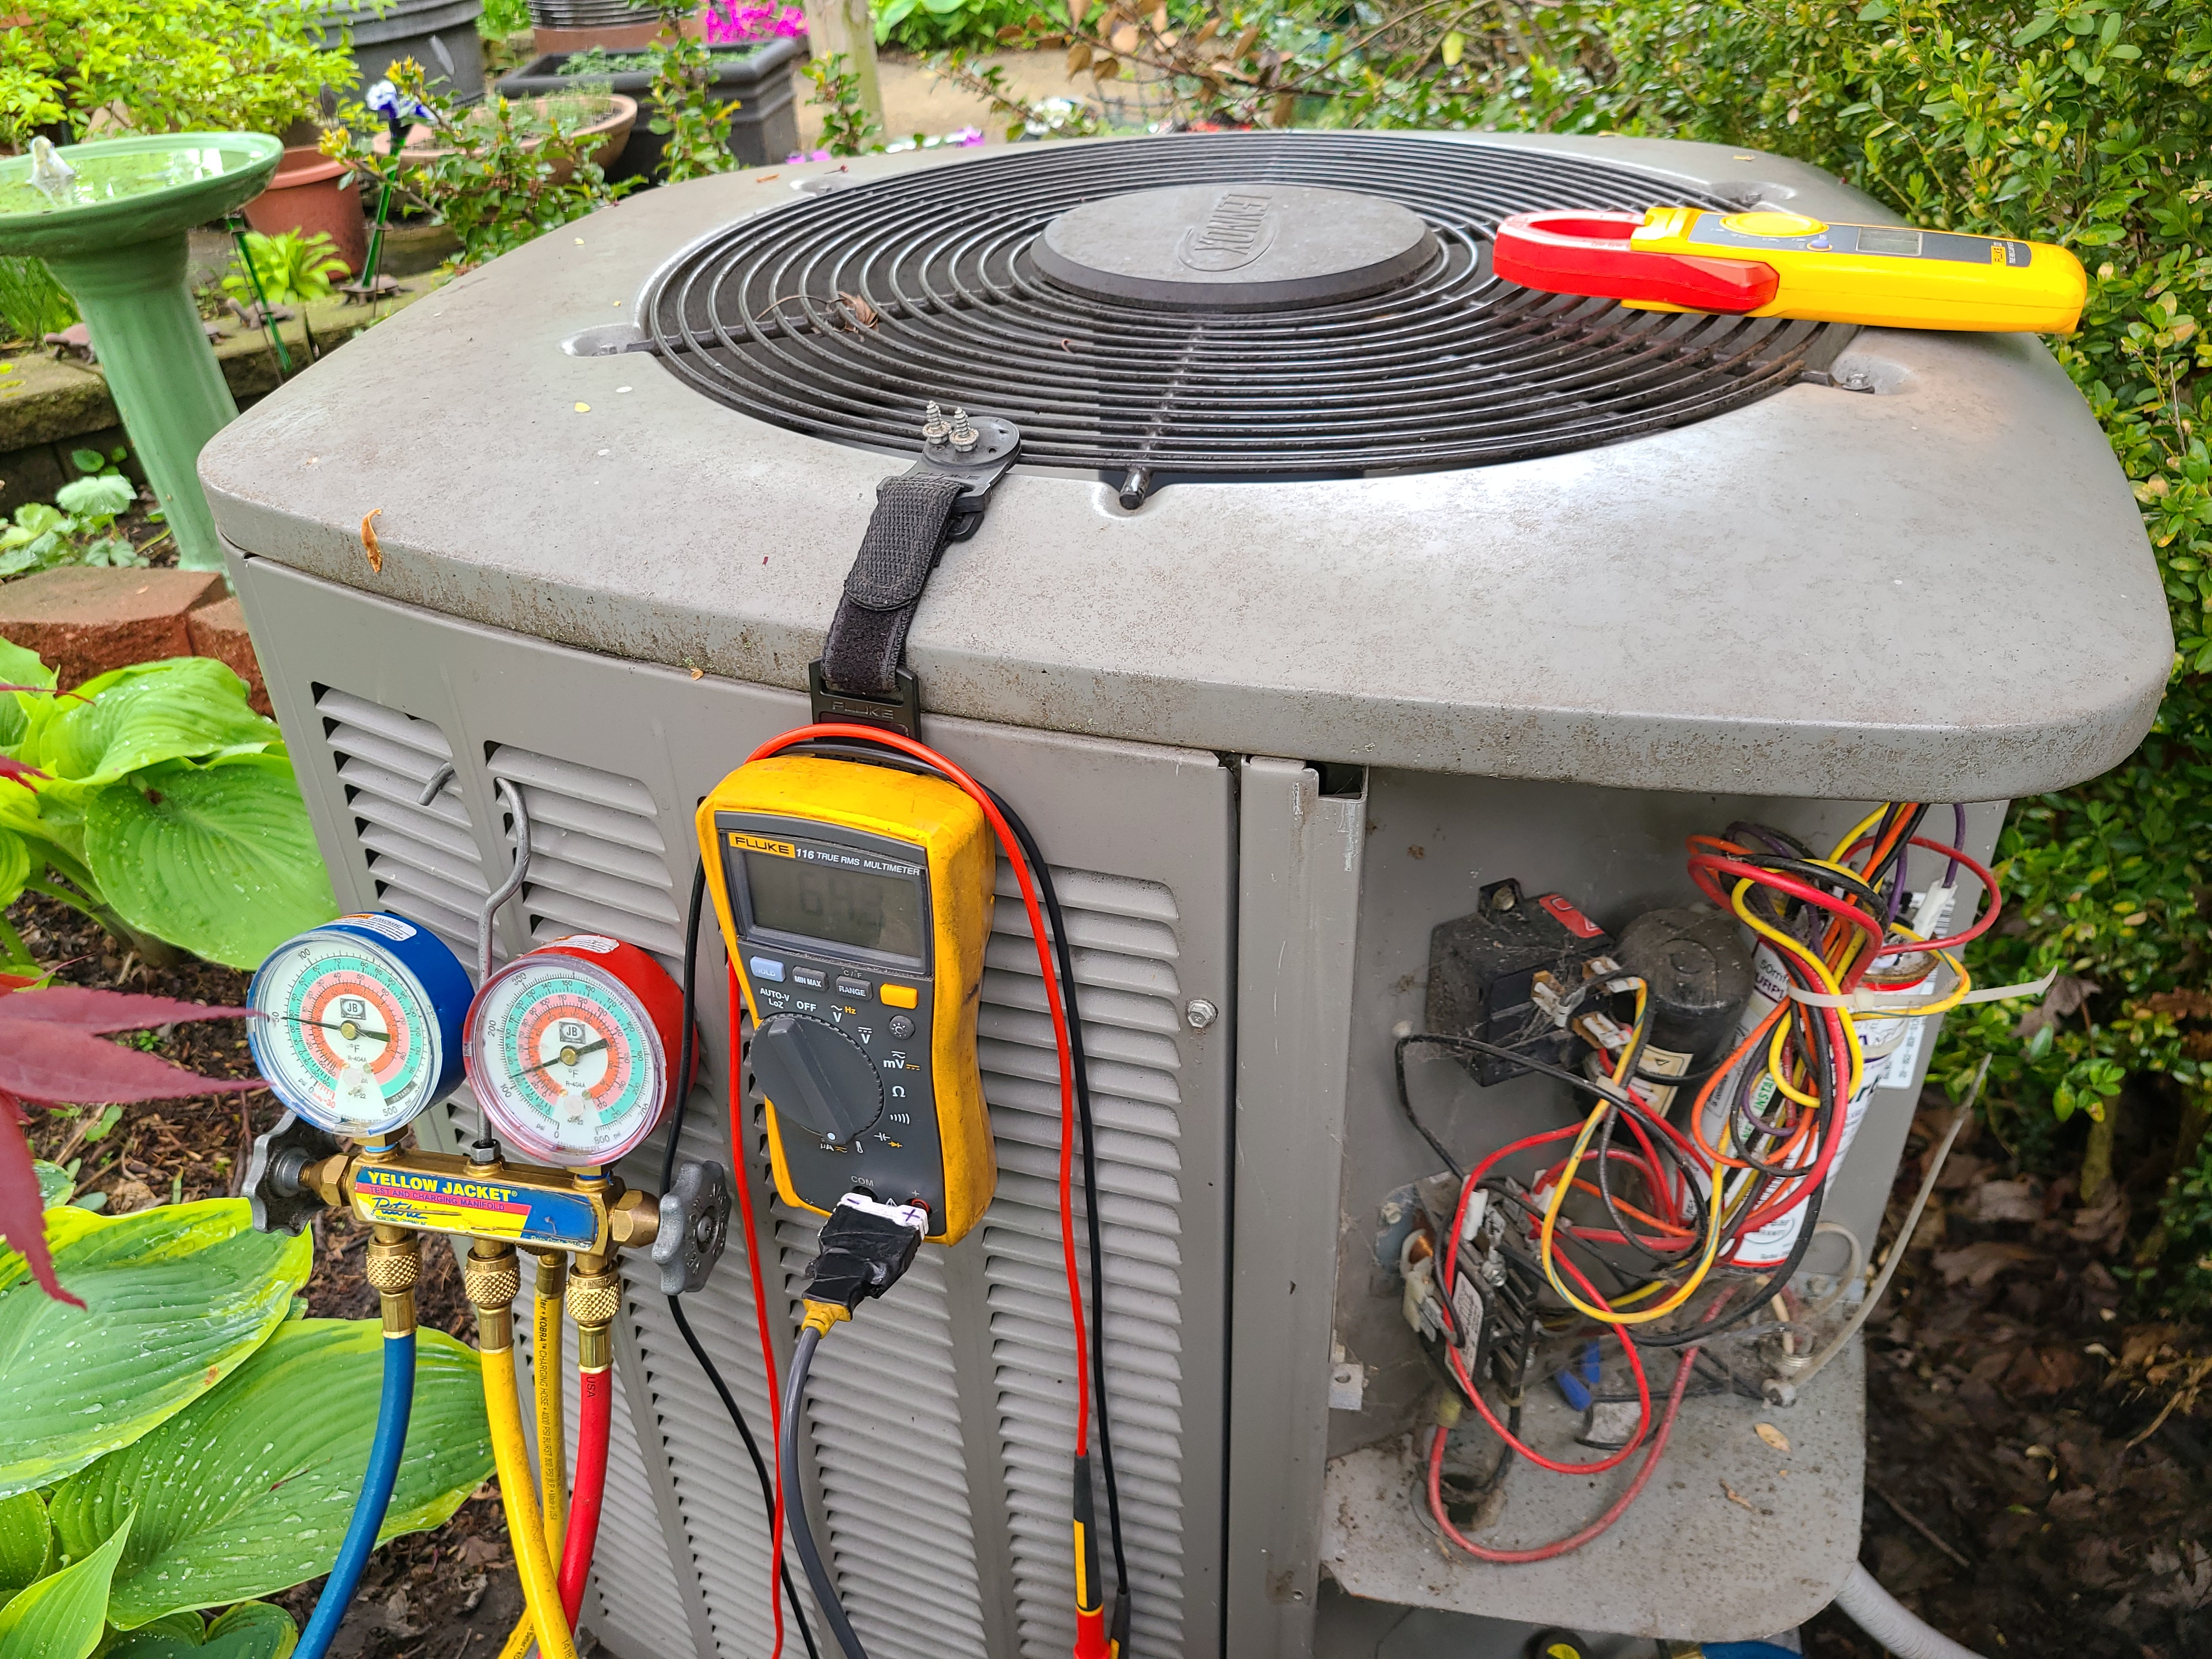 Lennox air conditioning system cleaned and checked, ready for spring.